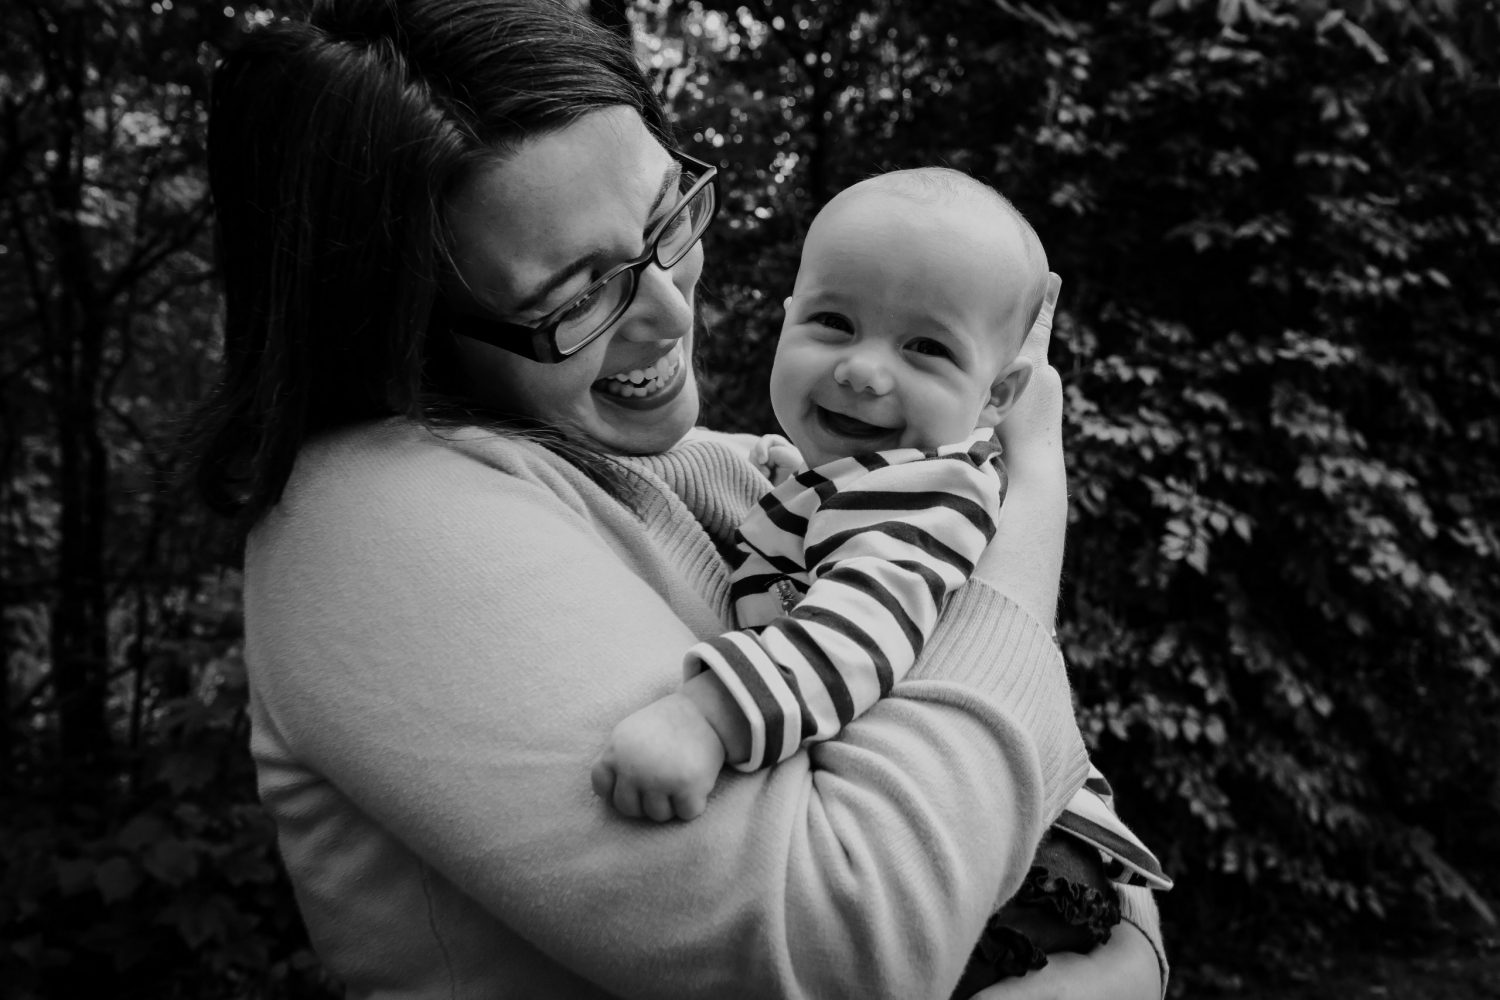 mom and baby laughing in fall at family photo session by cobourg family photographer, heather doughty photography